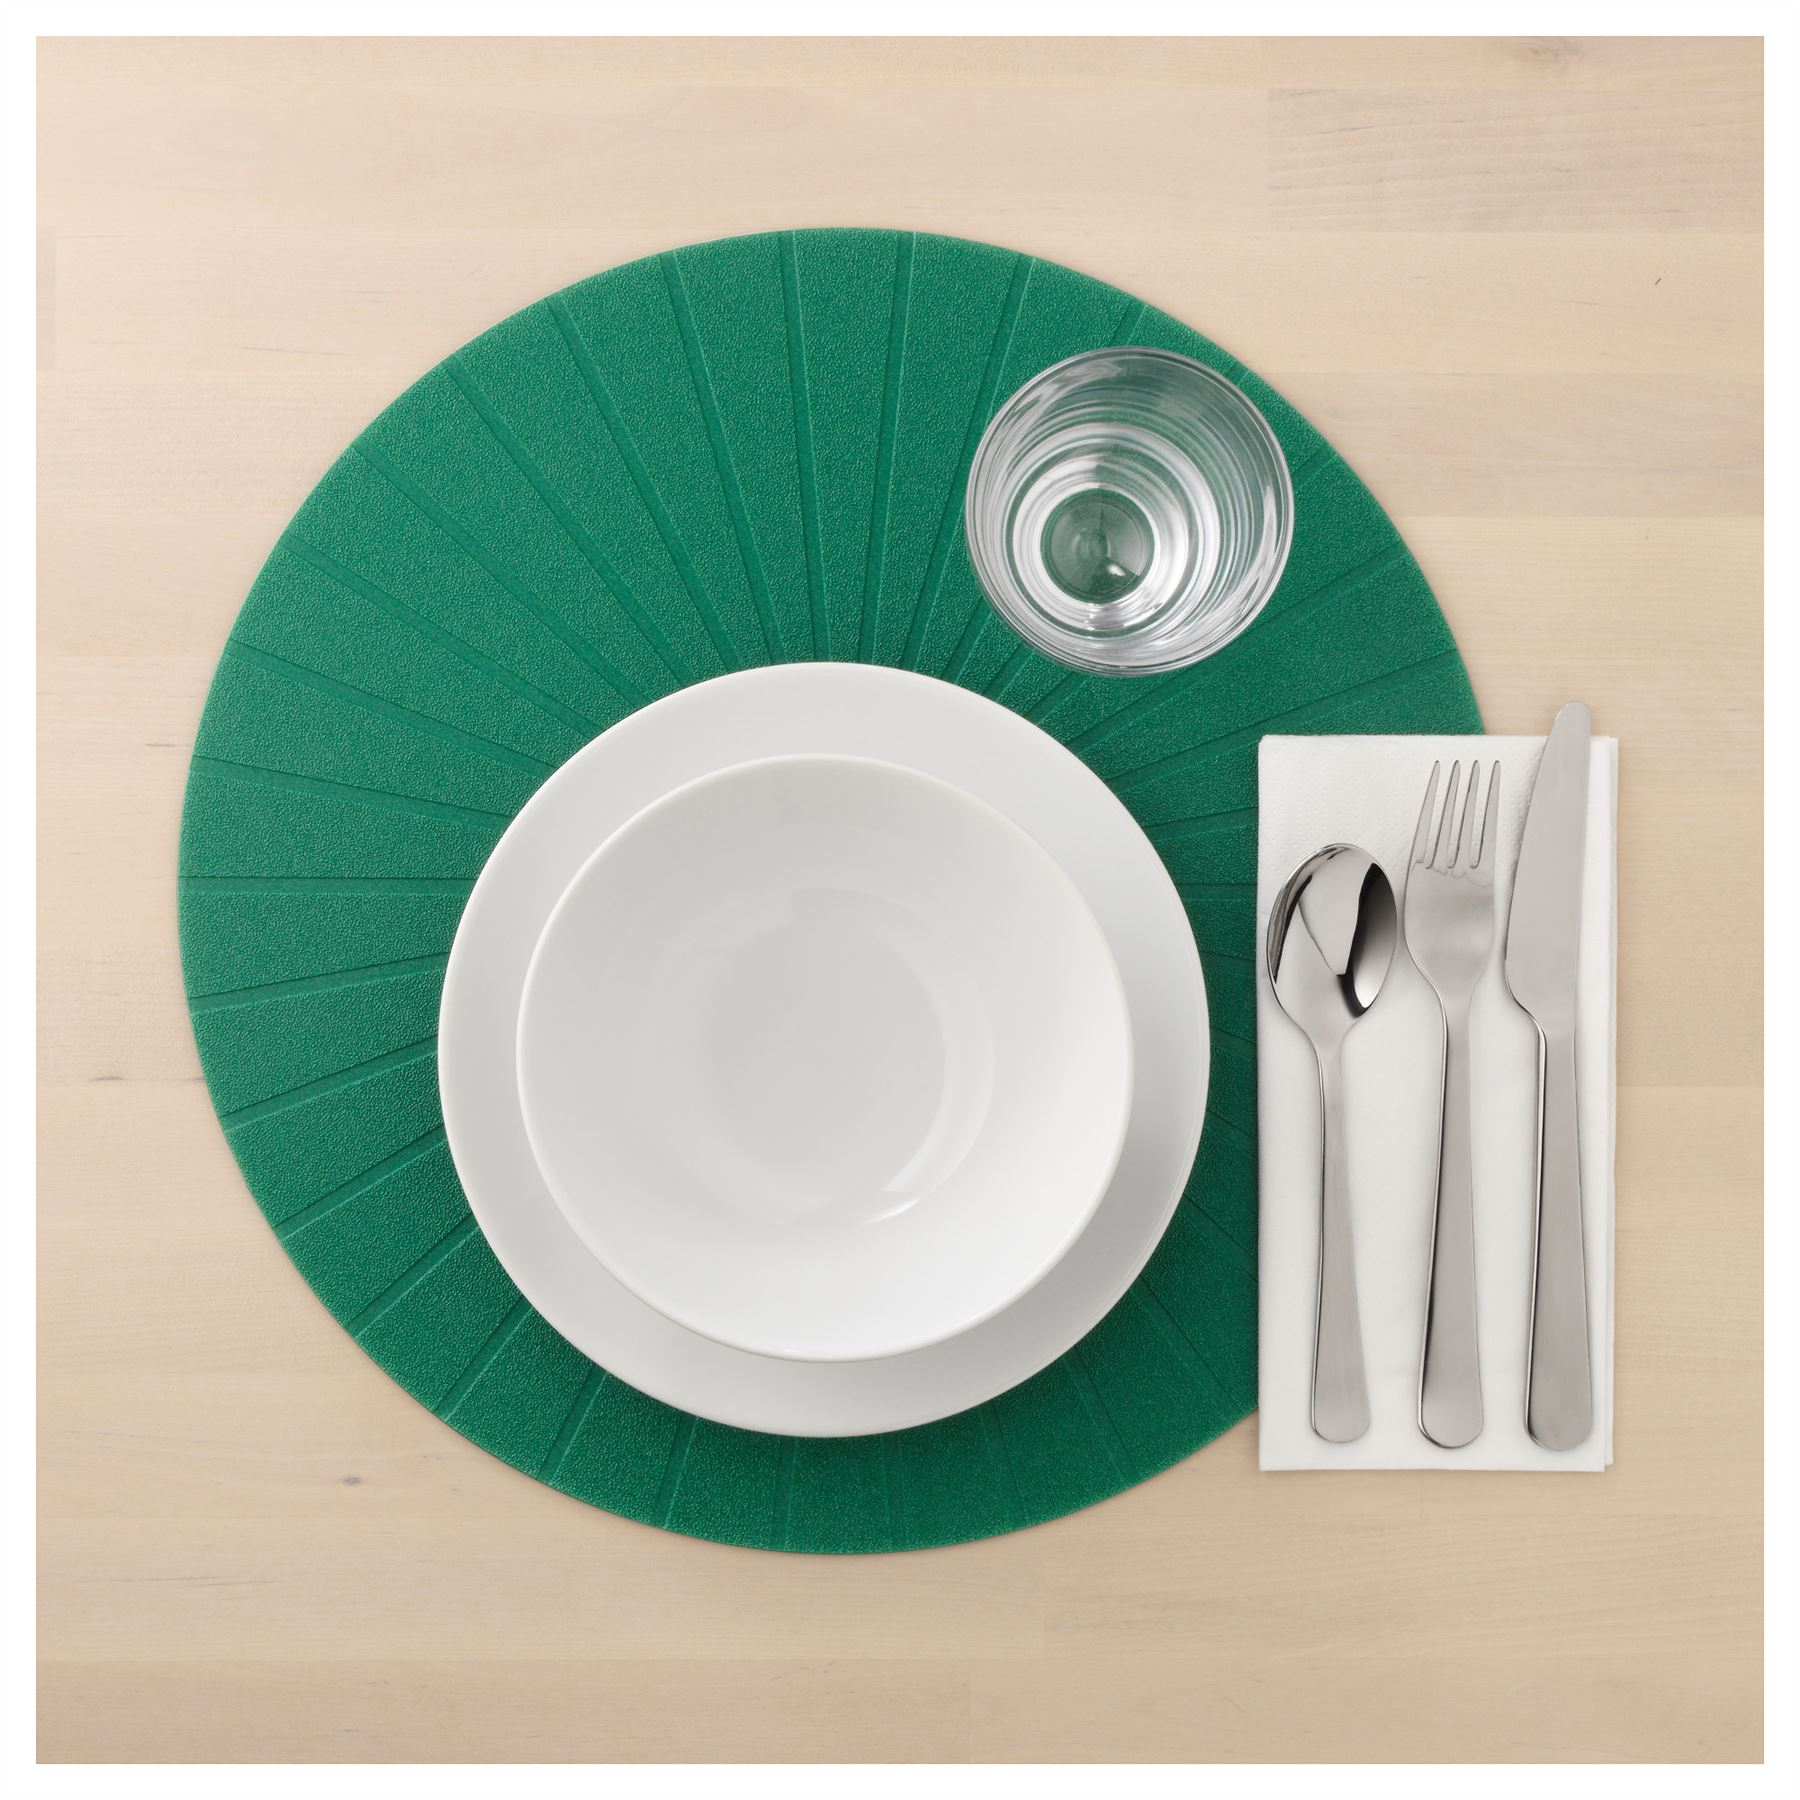 2x Ikea Panna Place Mat Dark Green 37cm Round Dining Table Kitchen ...